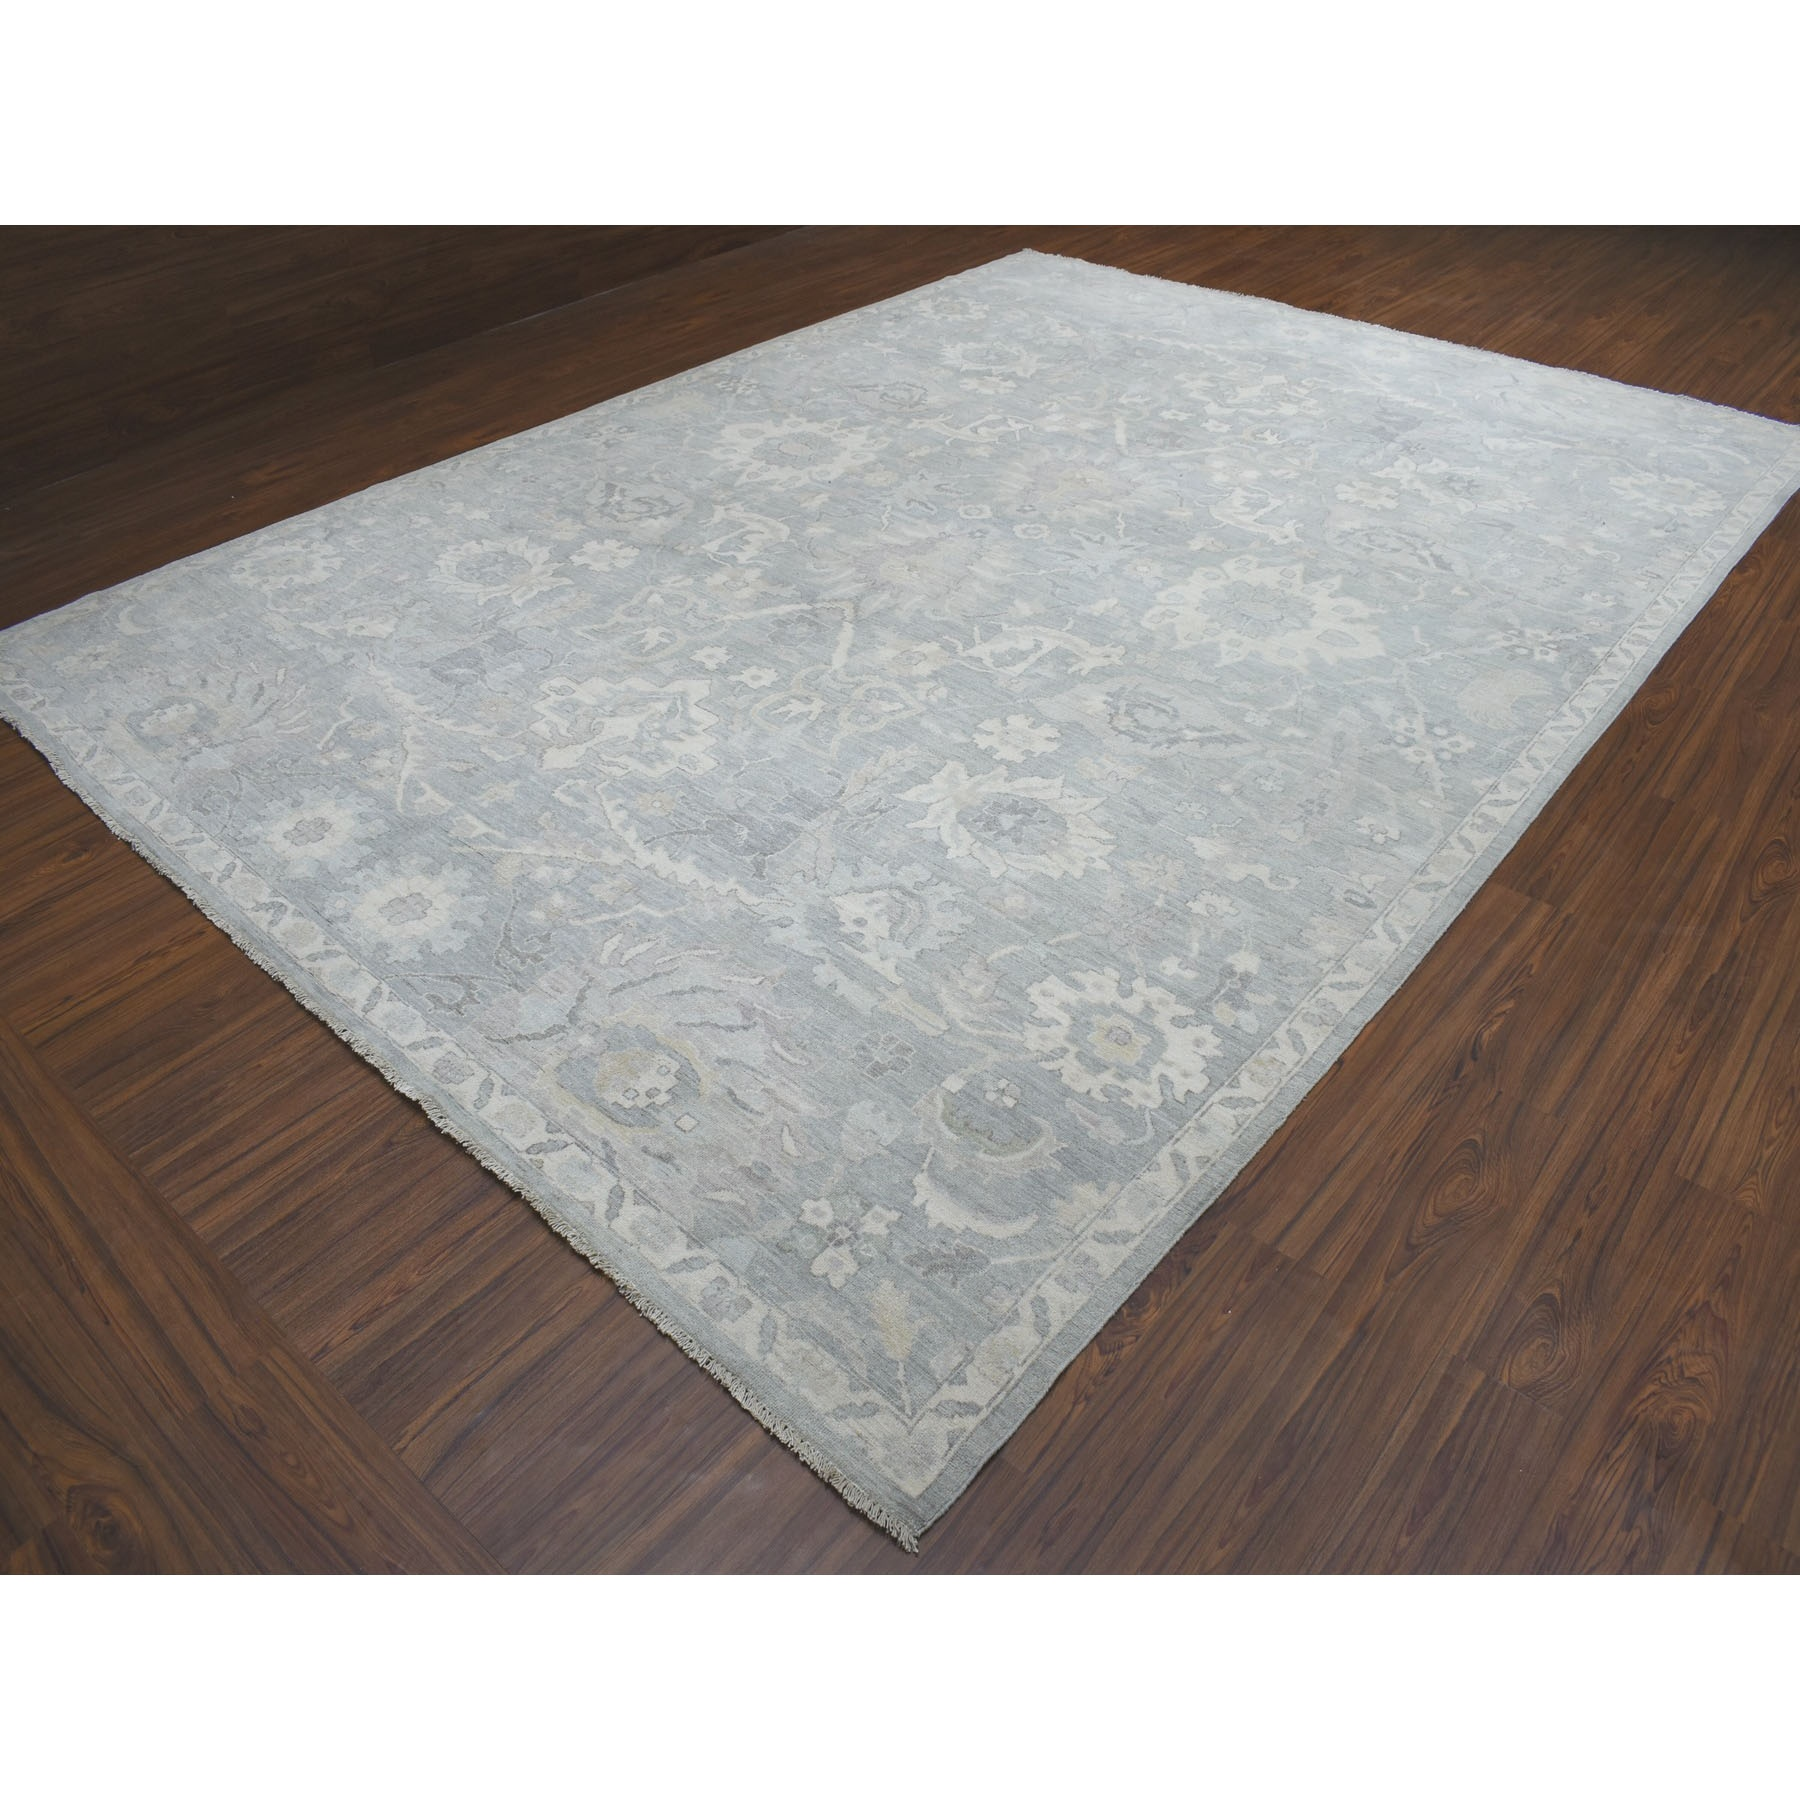 "10'x13'9"" White Wash Peshawar Pure Wool Hand Knotted Oriental Rug"